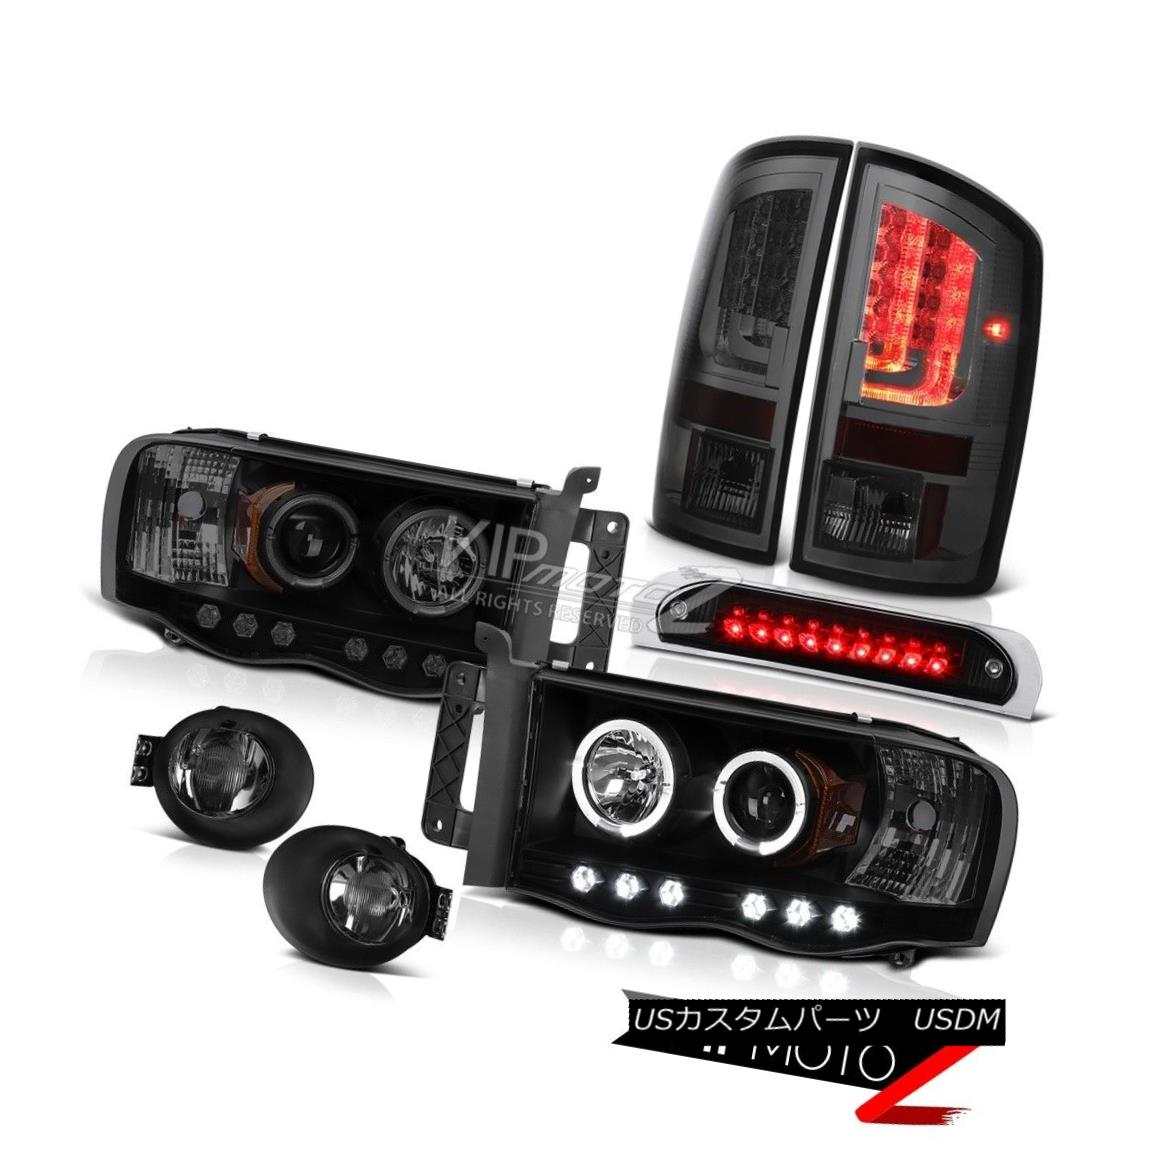 テールライト 02-05 Ram 1500 2500 3500 ST Tail Lights Fog High STop Lamp Headlights Halo Ring 02-05 Ram 1500 2500 3500 STテールライトフォグハイSTopランプヘッドライトHalo Ring